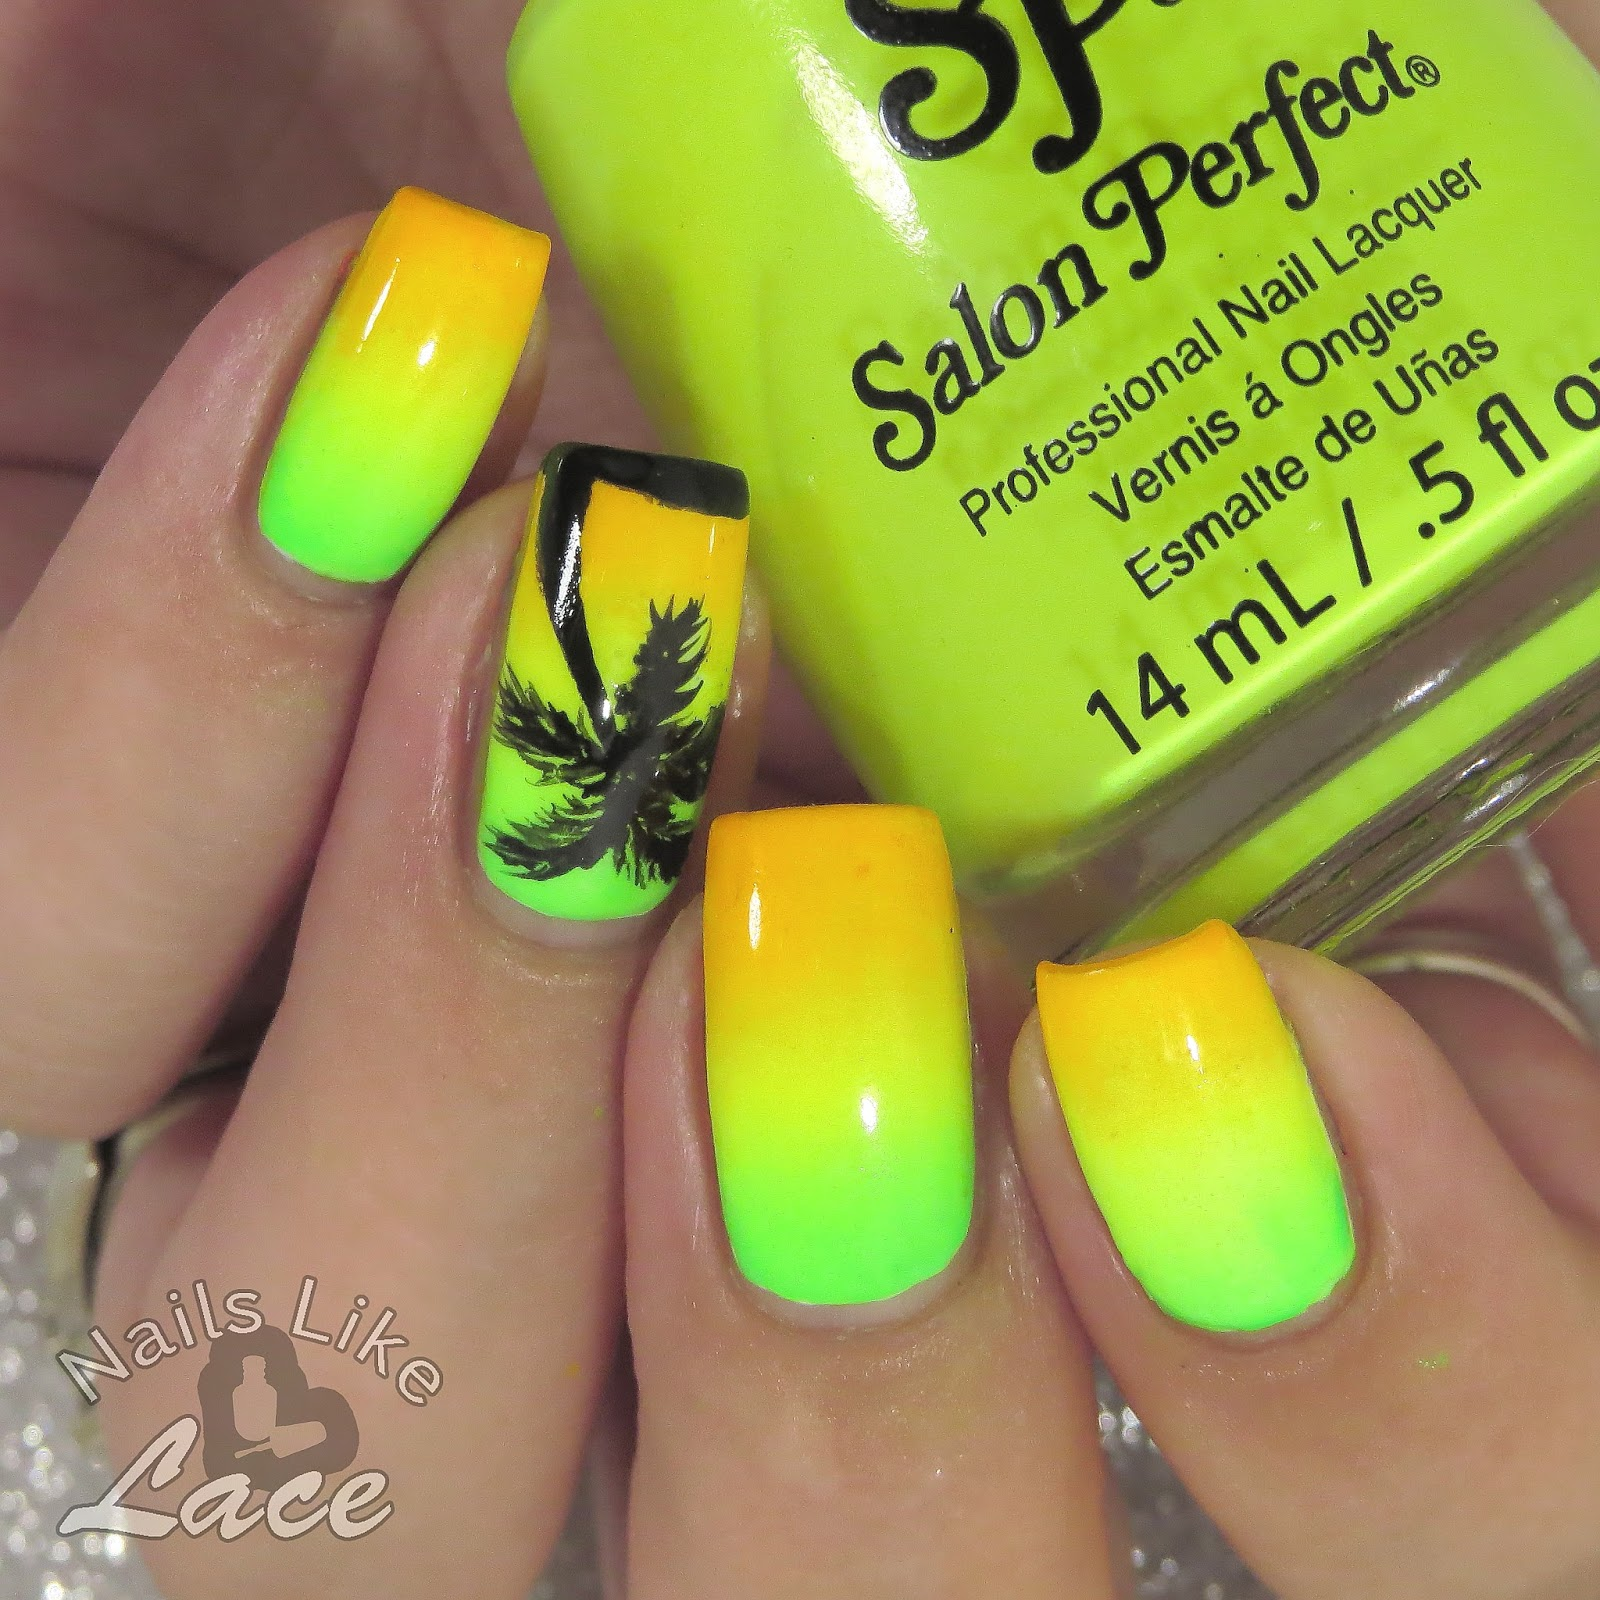 NailsLikeLace: Neon Gradient & Palm Tree Silhouette Nails